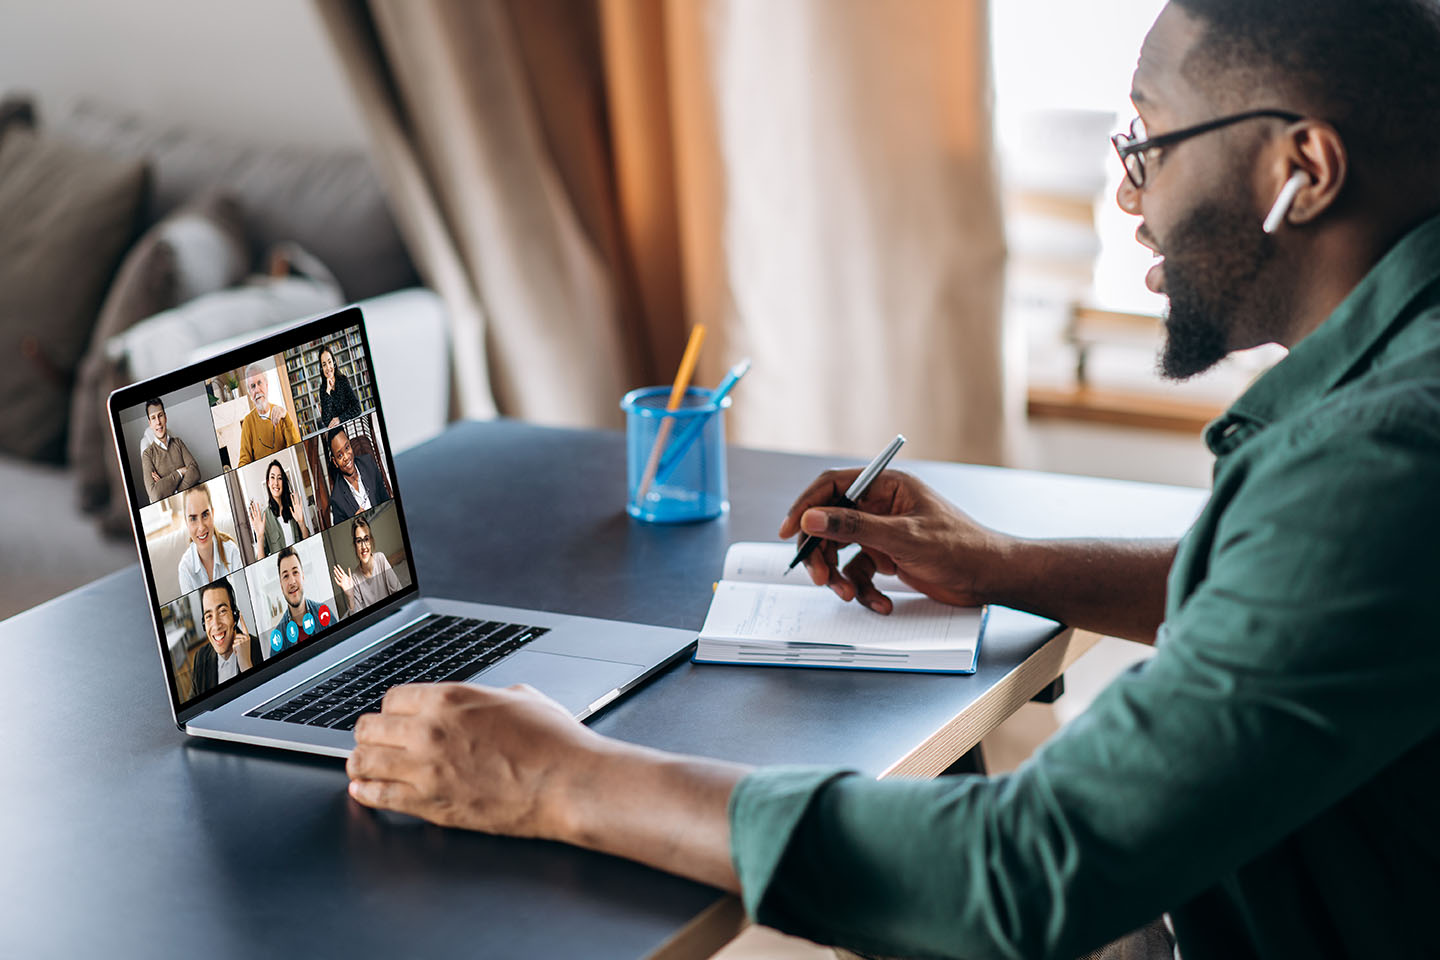 Online business briefing. Employee speak on video call with diverse colleagues, on laptop screen diverse business people, meeting online, group brainstorm.